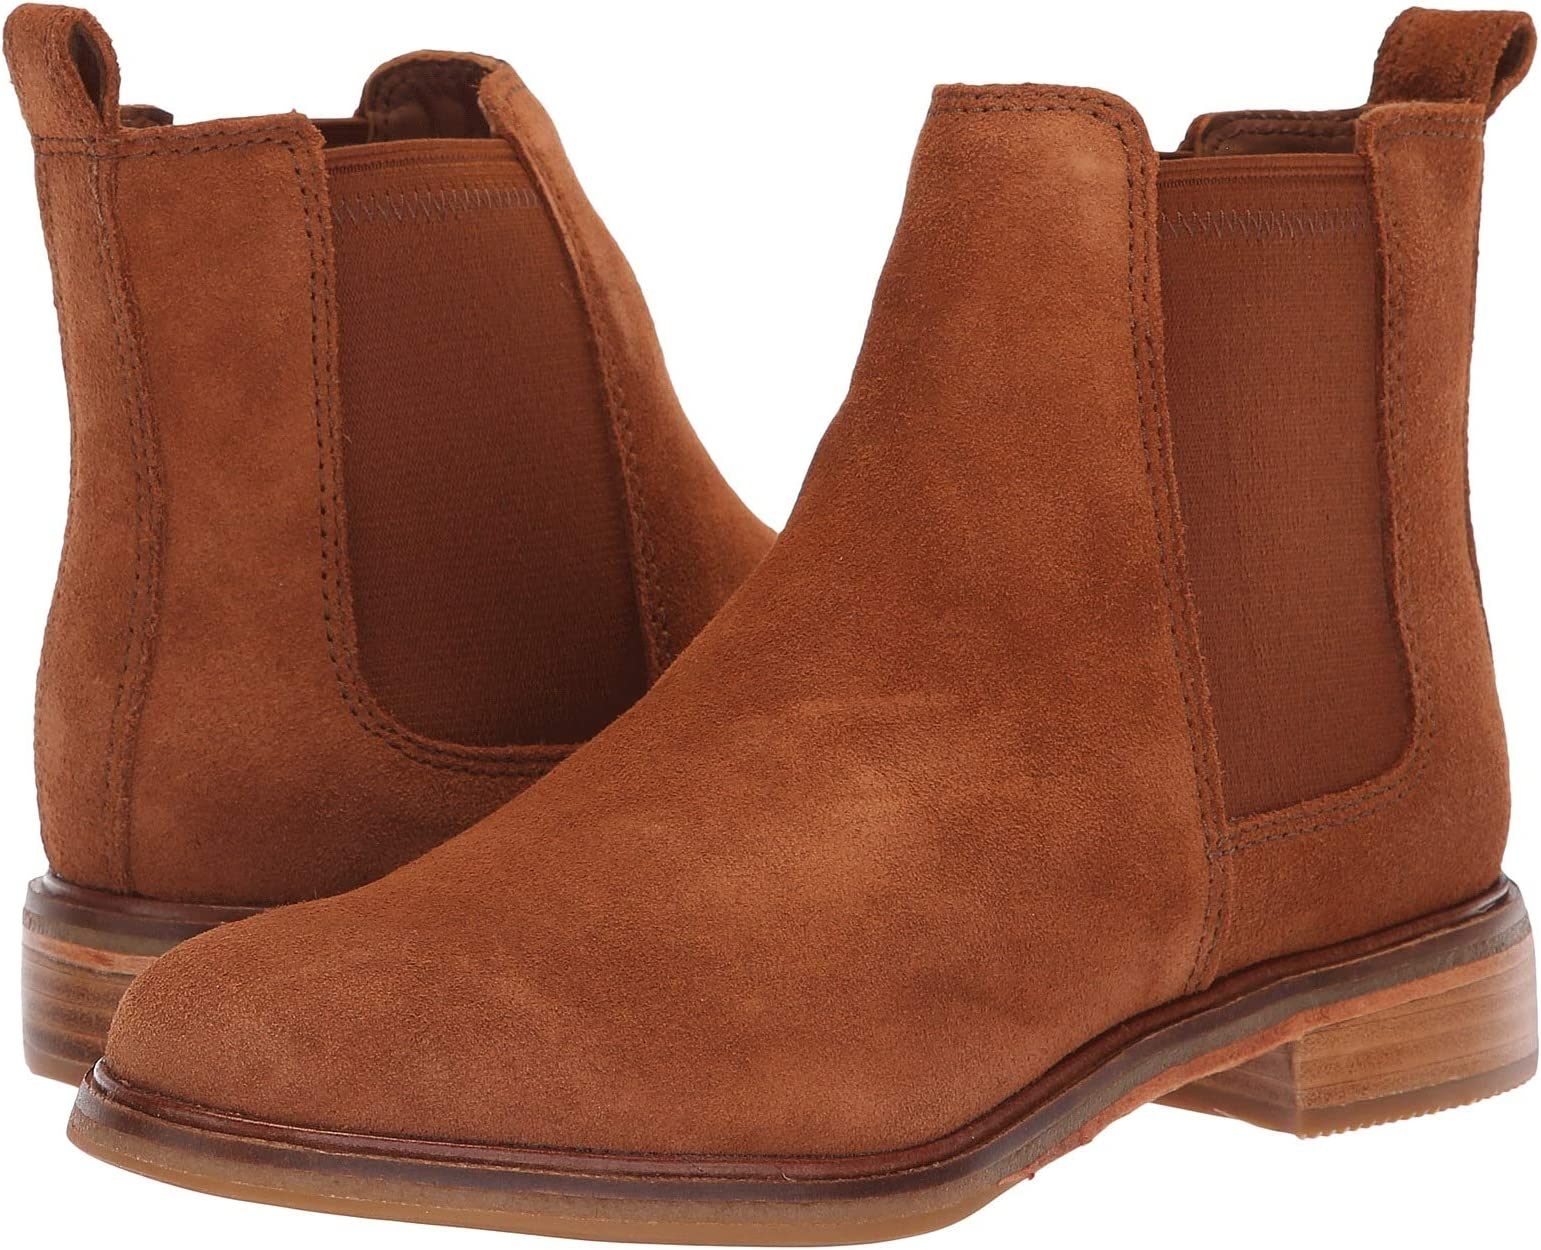 authorized site for whole family arriving Clarks Shoes, Boots, Loafers, Sneakers & Heels | Zappos.com